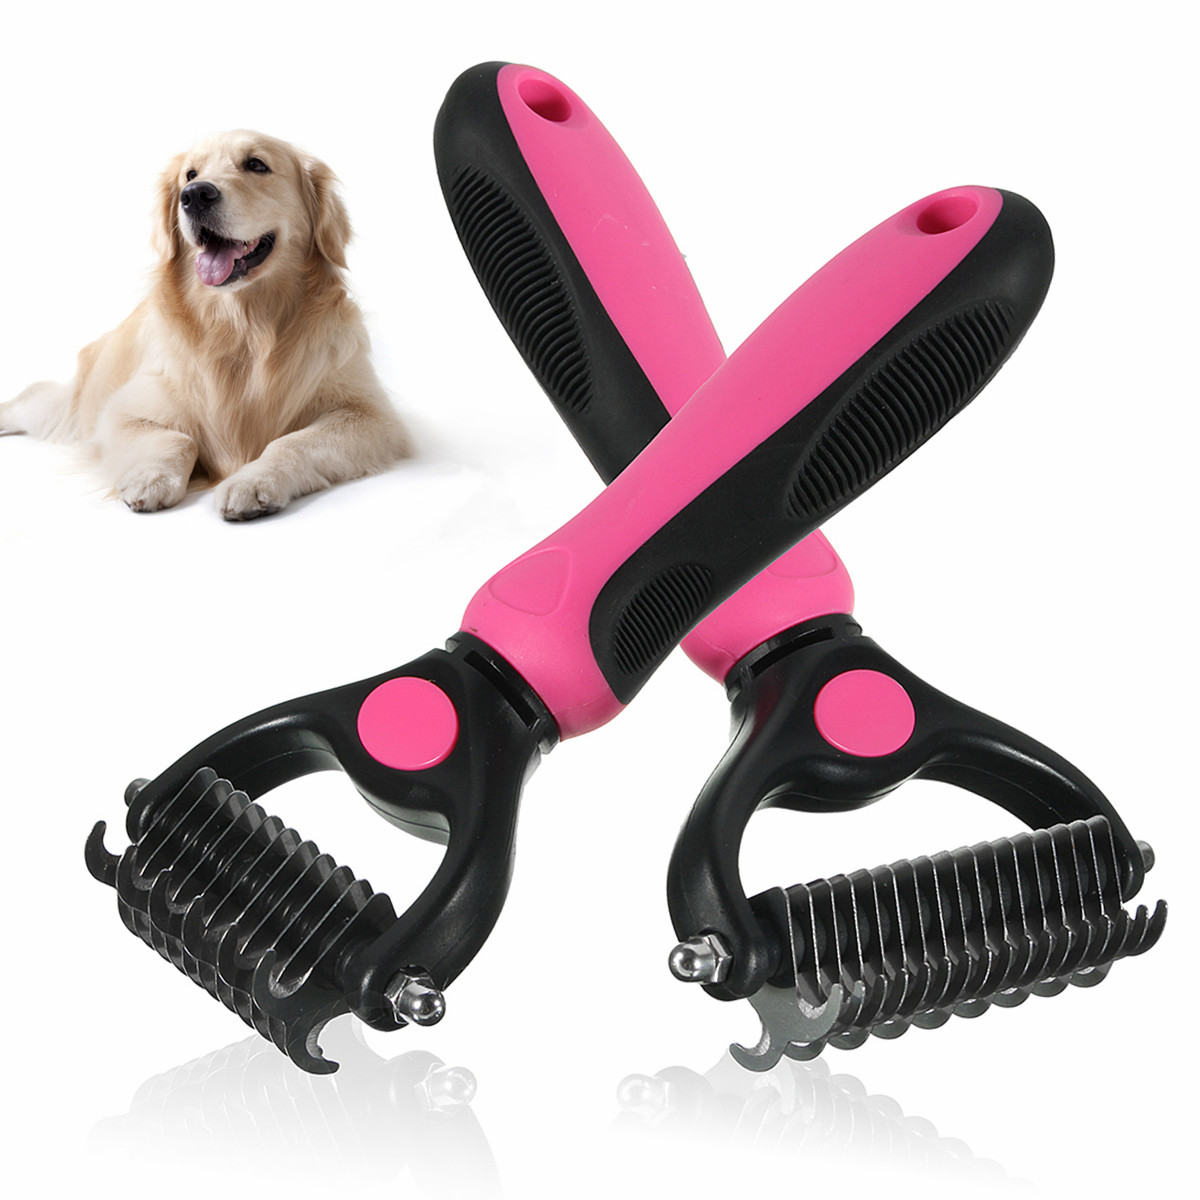 Pet Dog Cat Grooming Self Cleaning Slicker Professional Brush Comb Hair Fur Shedding Tool Size:S/L